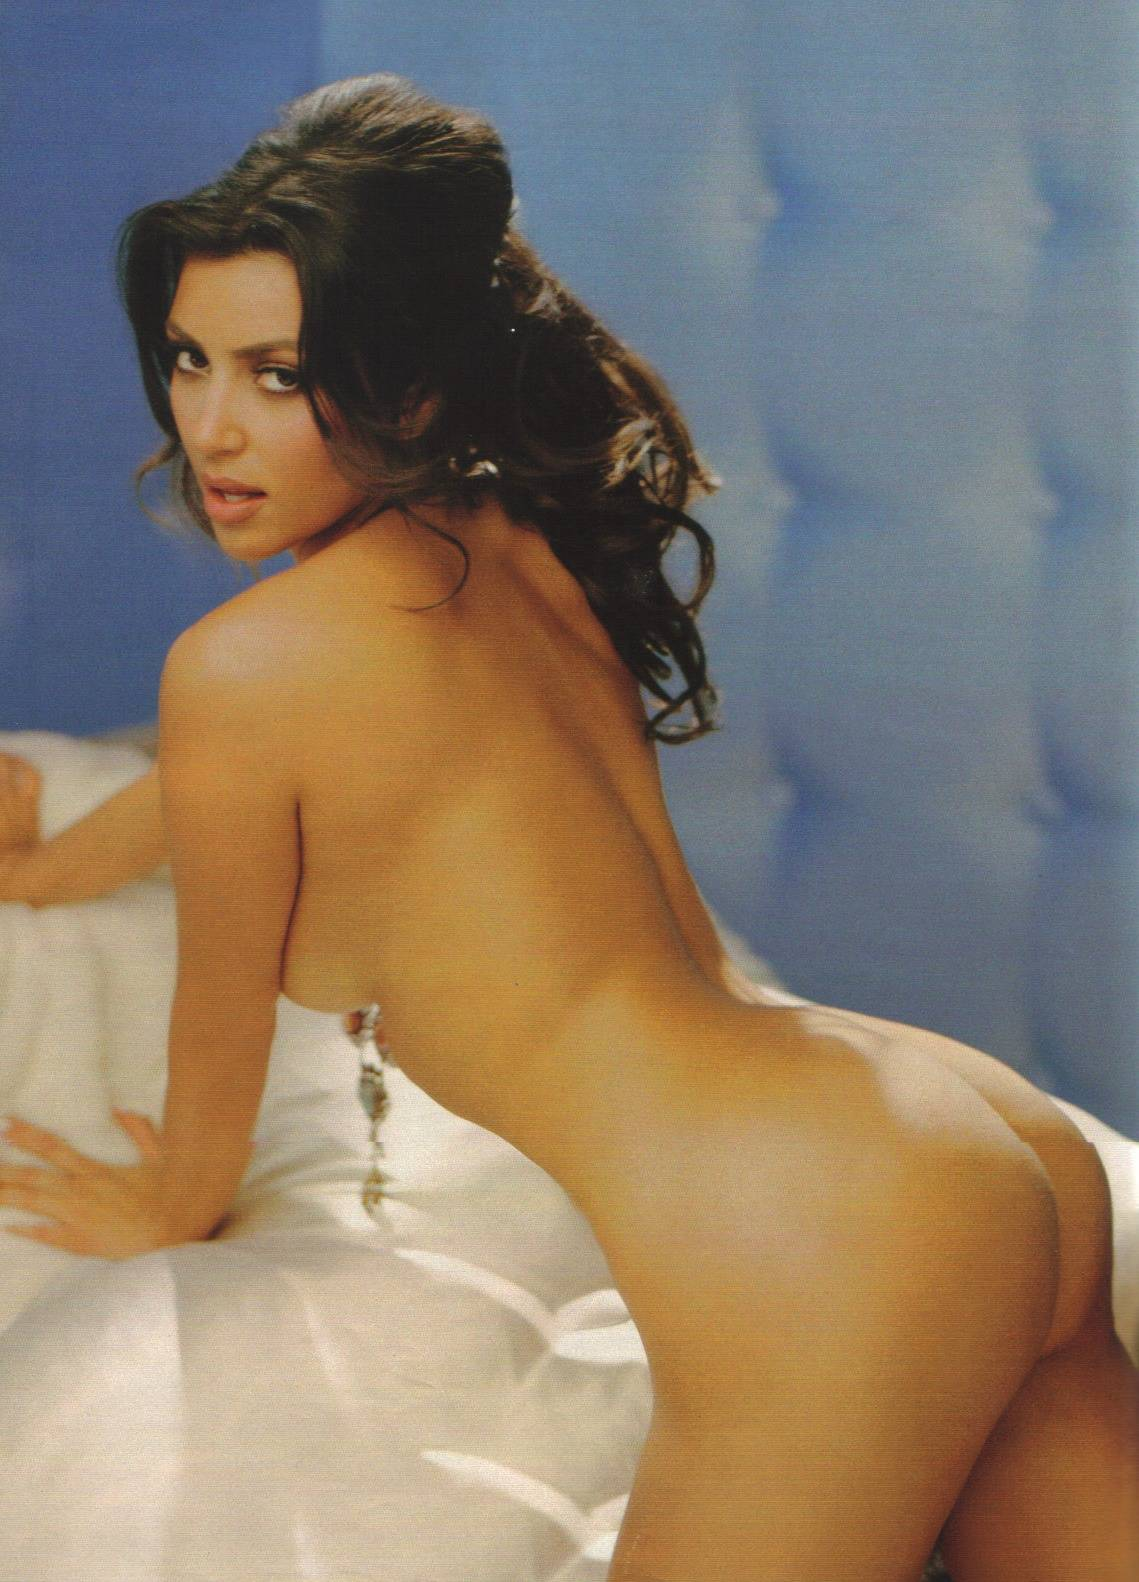 Hot nude pictures of kim kardashian remarkable idea